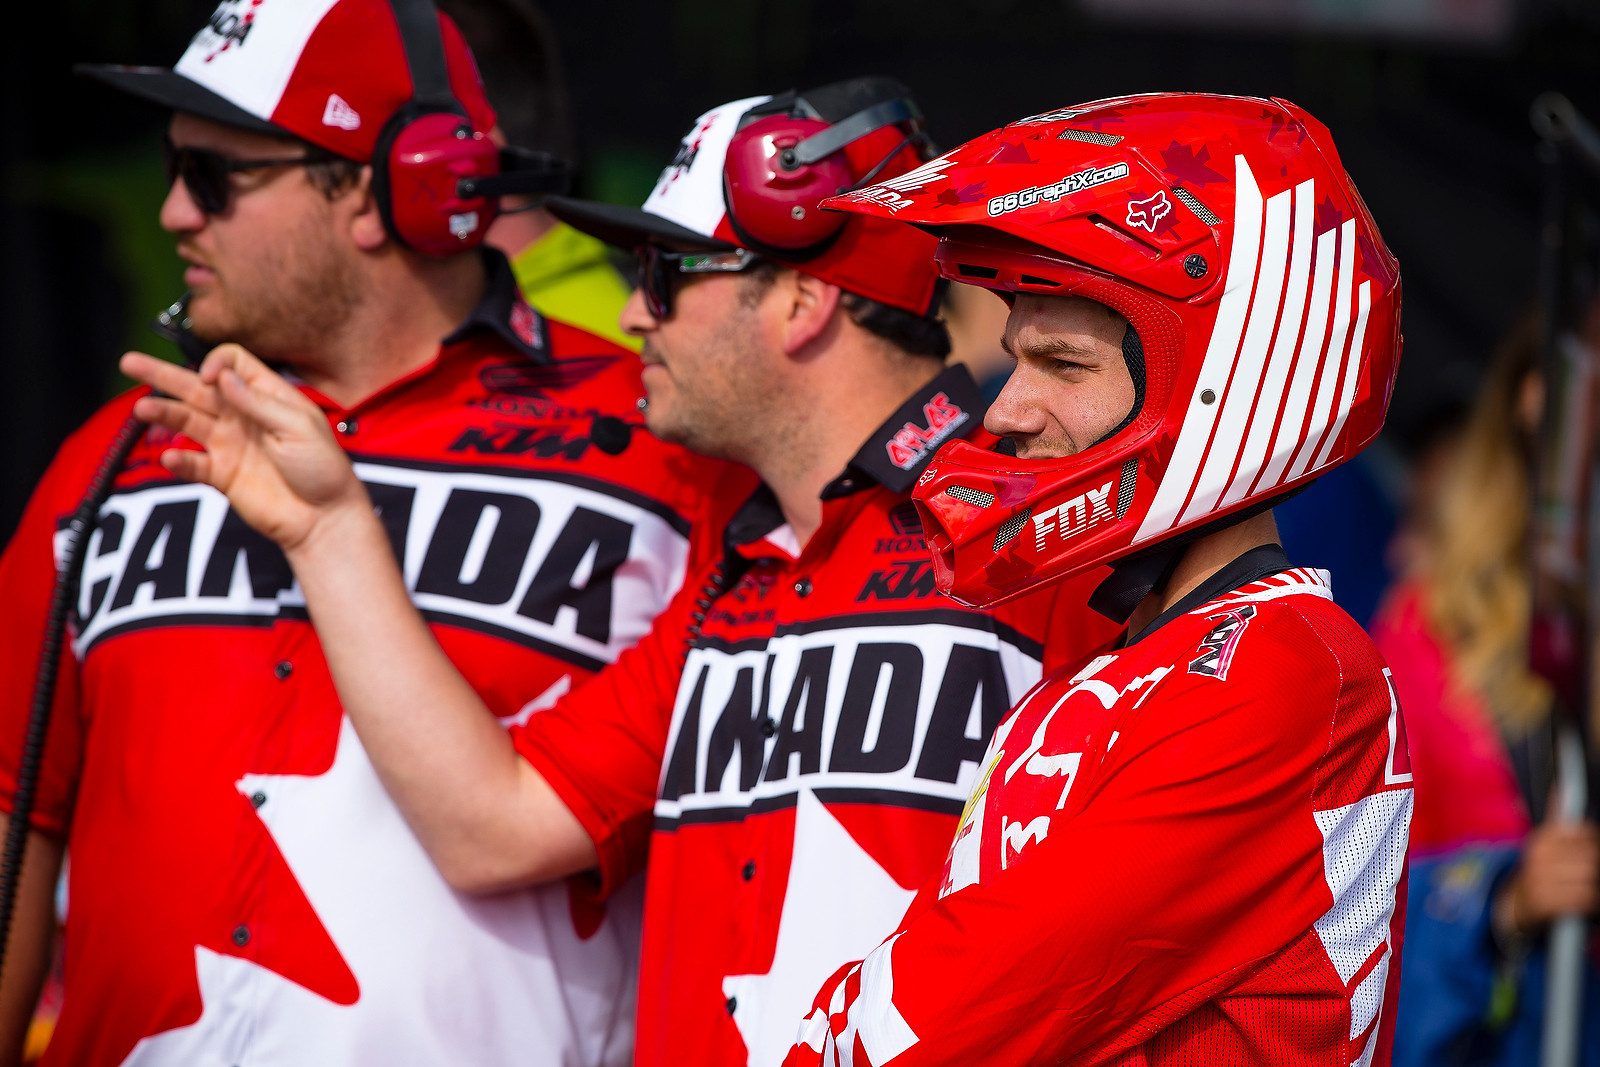 Oh, Canada - kardy - Motocross Pictures - Vital MX